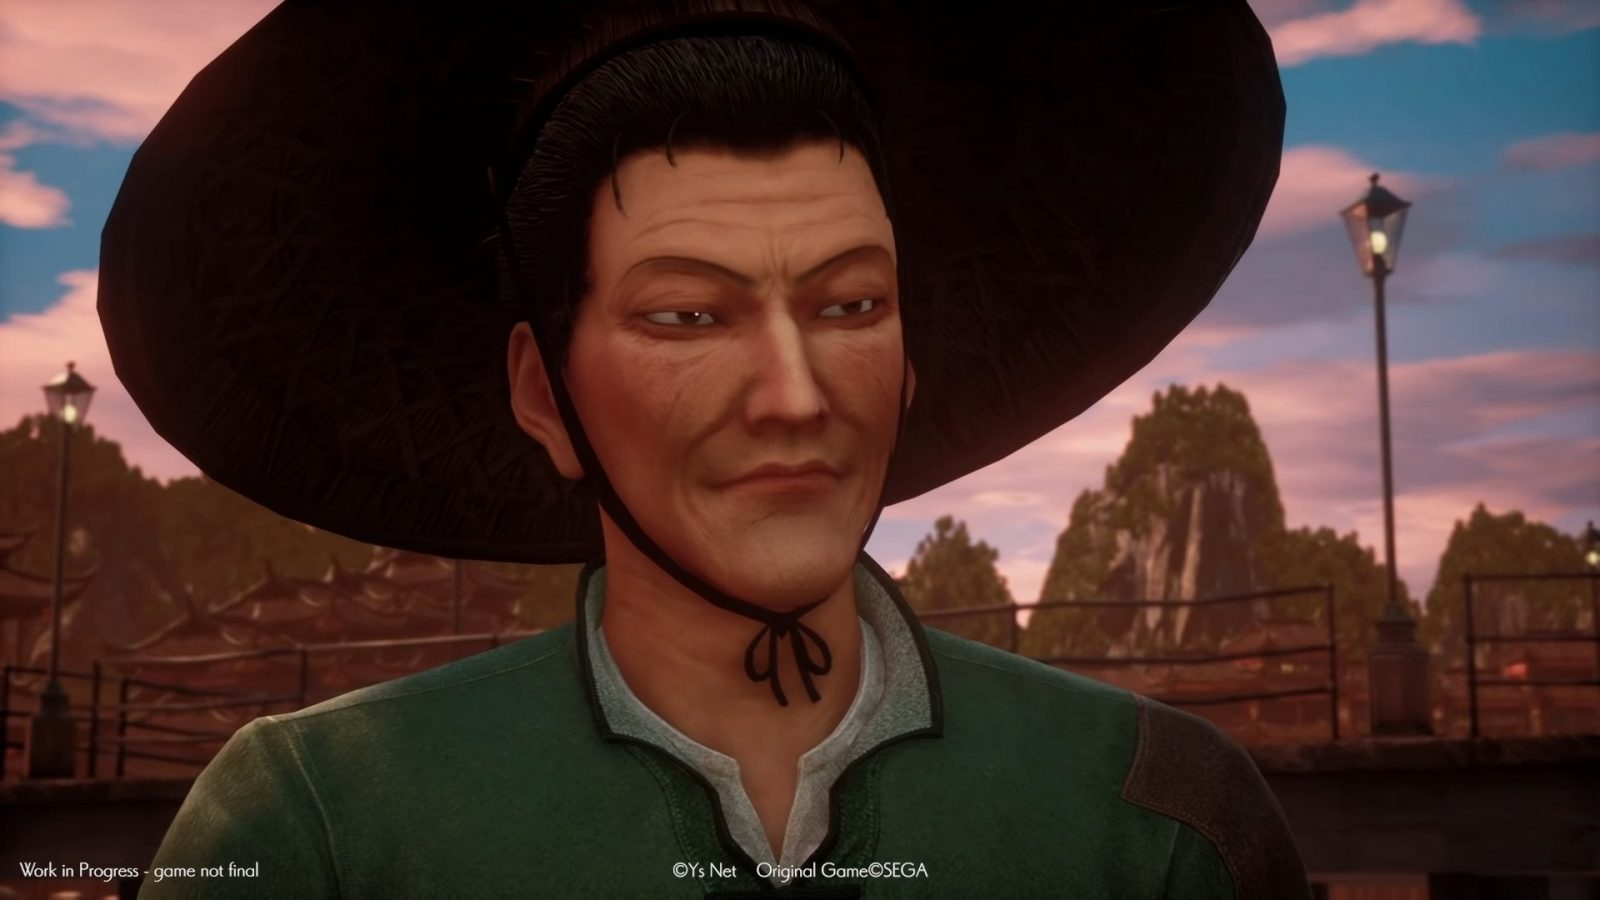 Shenmue III Refunds Can Take up to 3 Months to Process